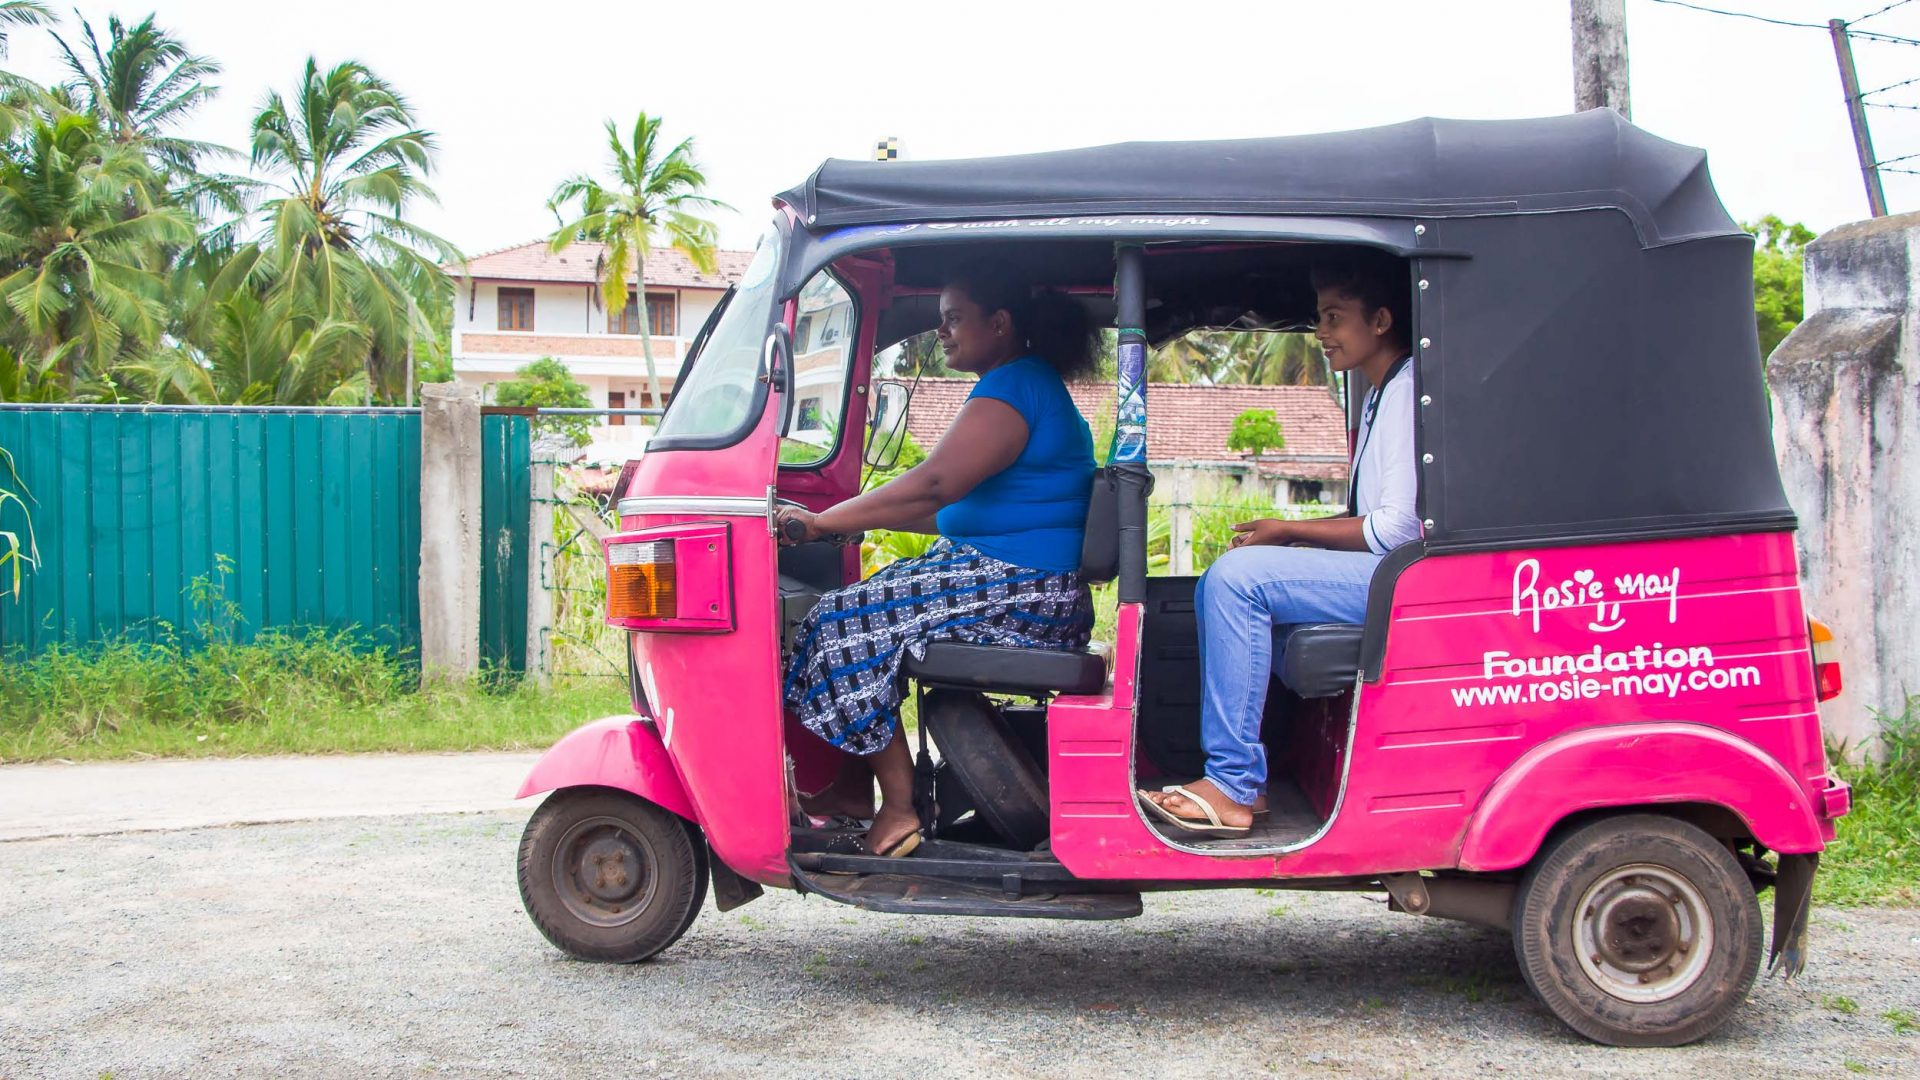 Meet the Sri Lankan women driving pink tuk-tuks in a man's world